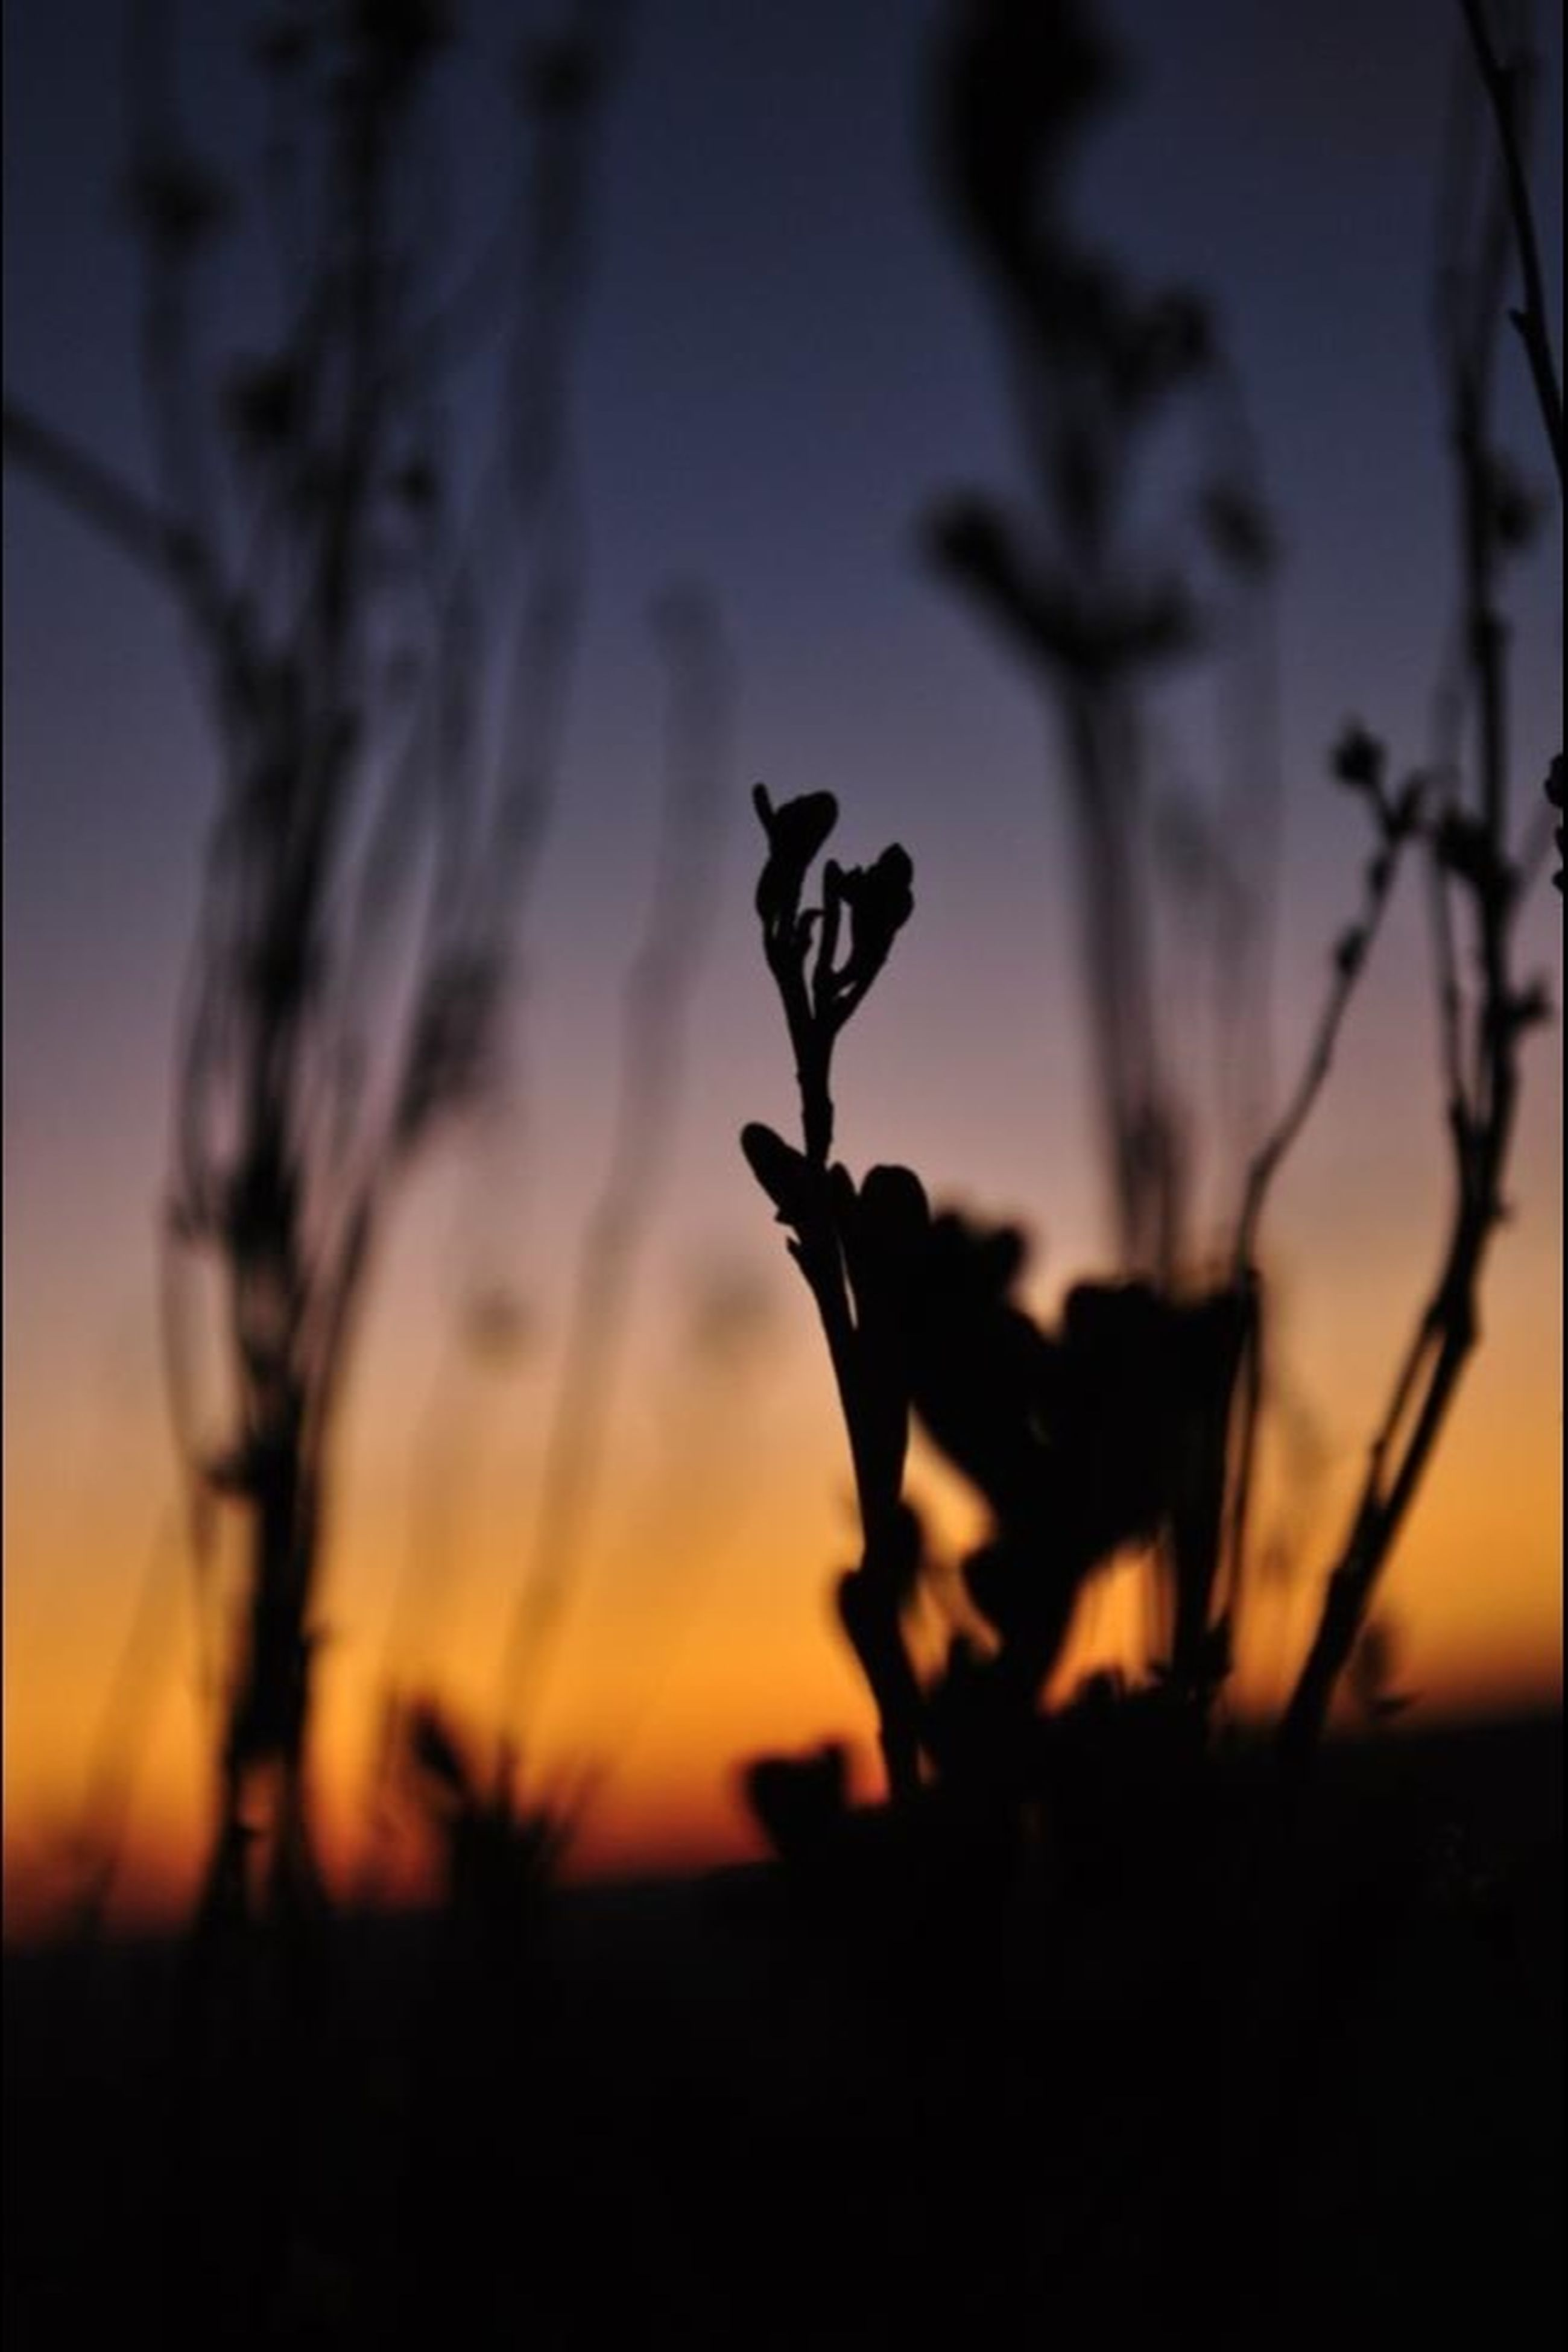 sunset, silhouette, focus on foreground, selective focus, orange color, close-up, plant, nature, stem, growth, beauty in nature, tranquility, dusk, sky, outdoors, no people, field, sunlight, branch, landscape